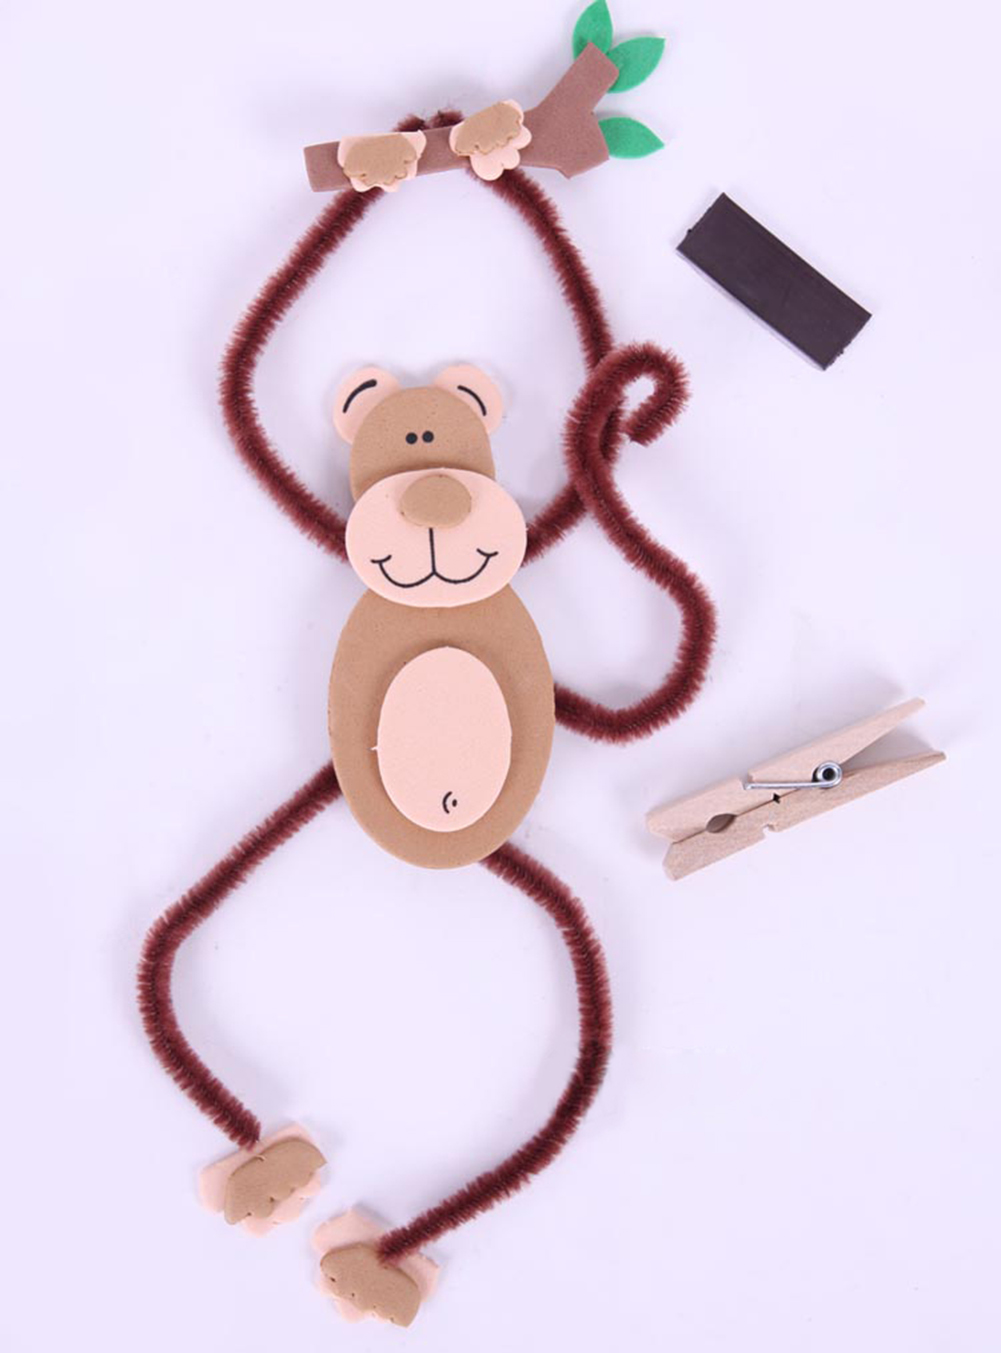 GOGO Design Your Own! Foam Wall Hanger Decoration - Monkey